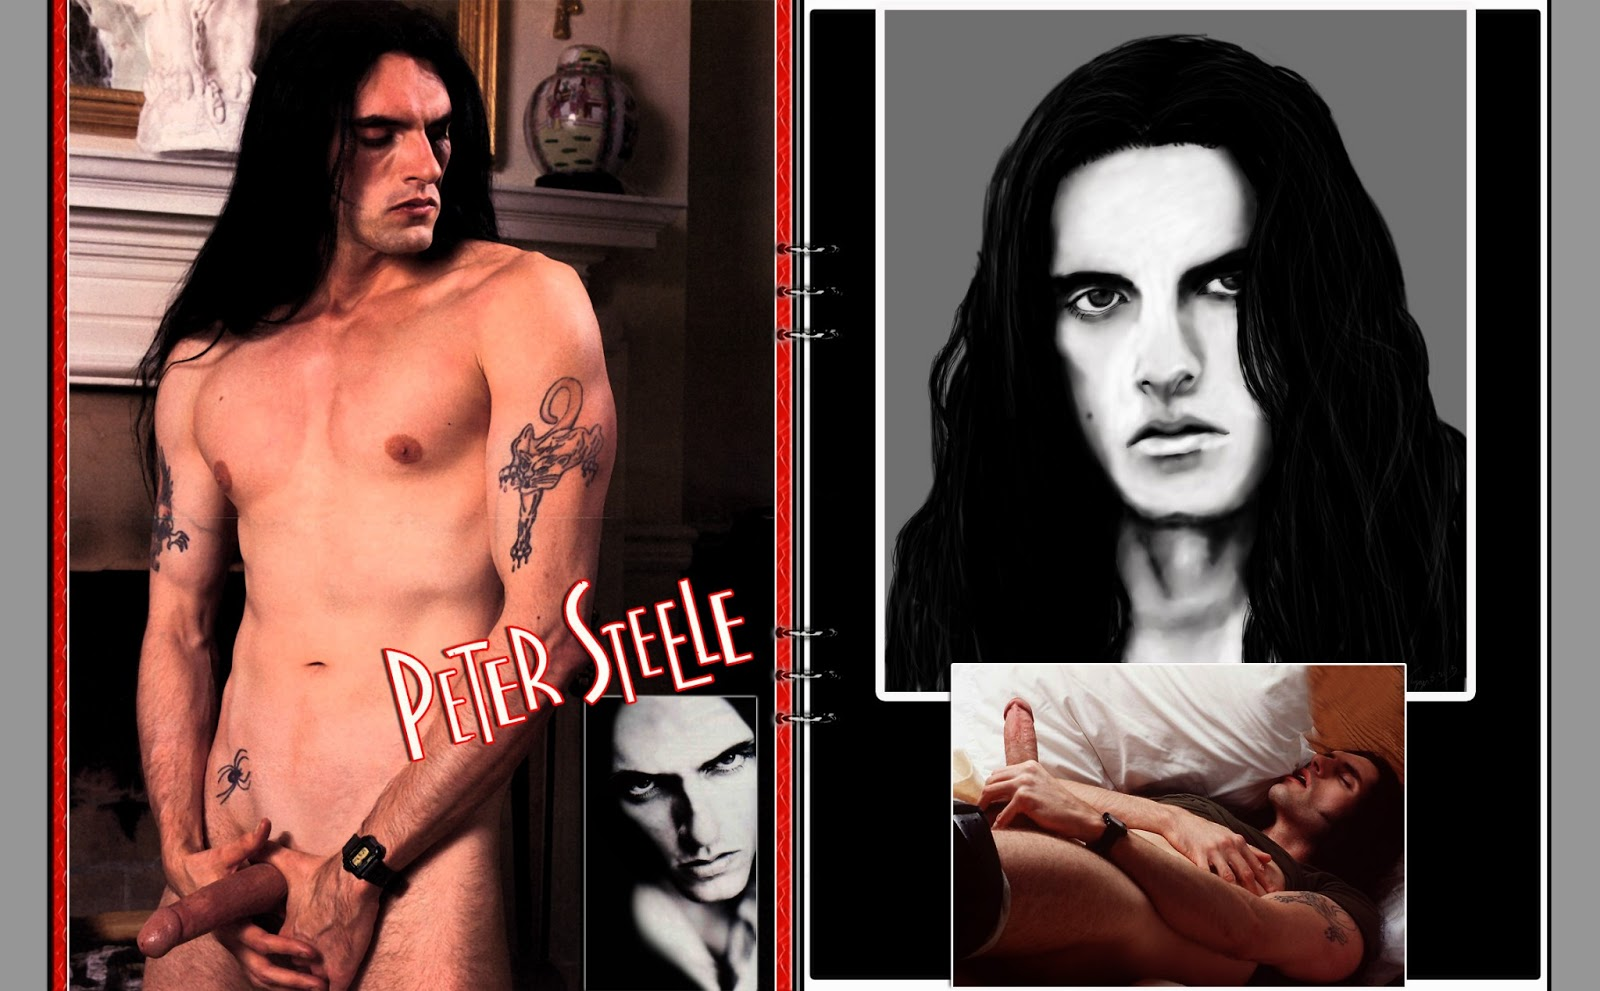 Peter steele autographed playgirl cover typeo carnivore